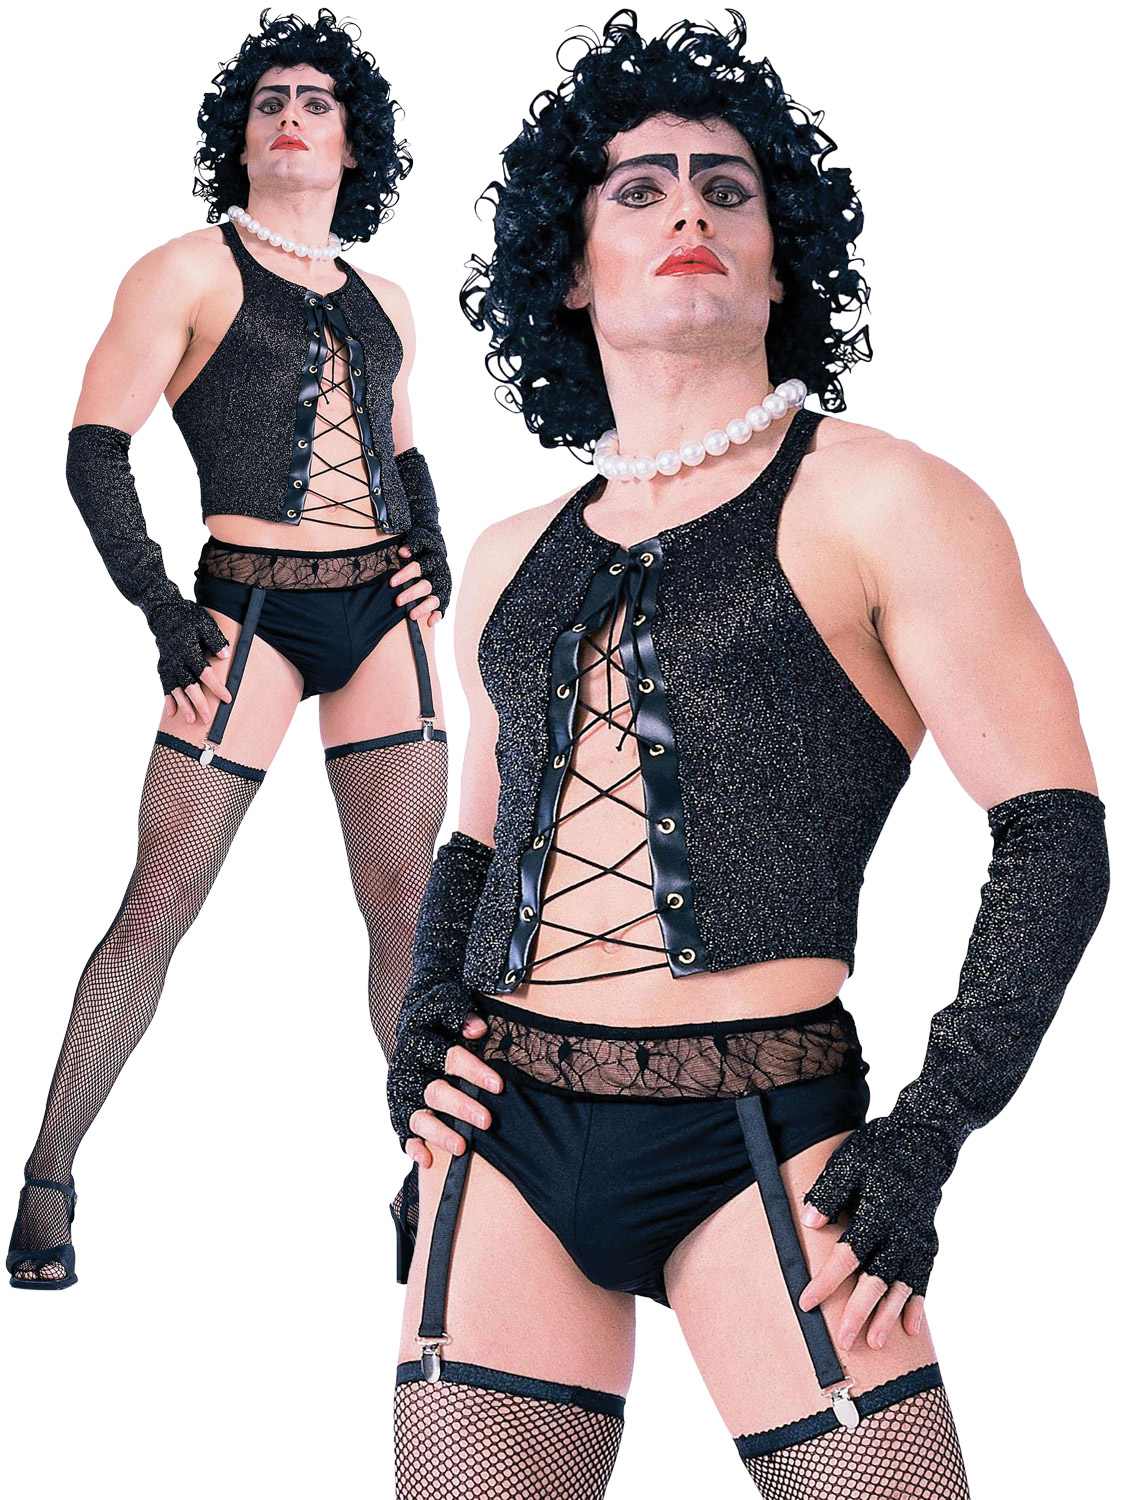 889348ef342b9 Details about Mens Frank N Furter Costume Adult Rocky Horror Halloween  Fancy Dress Outfit